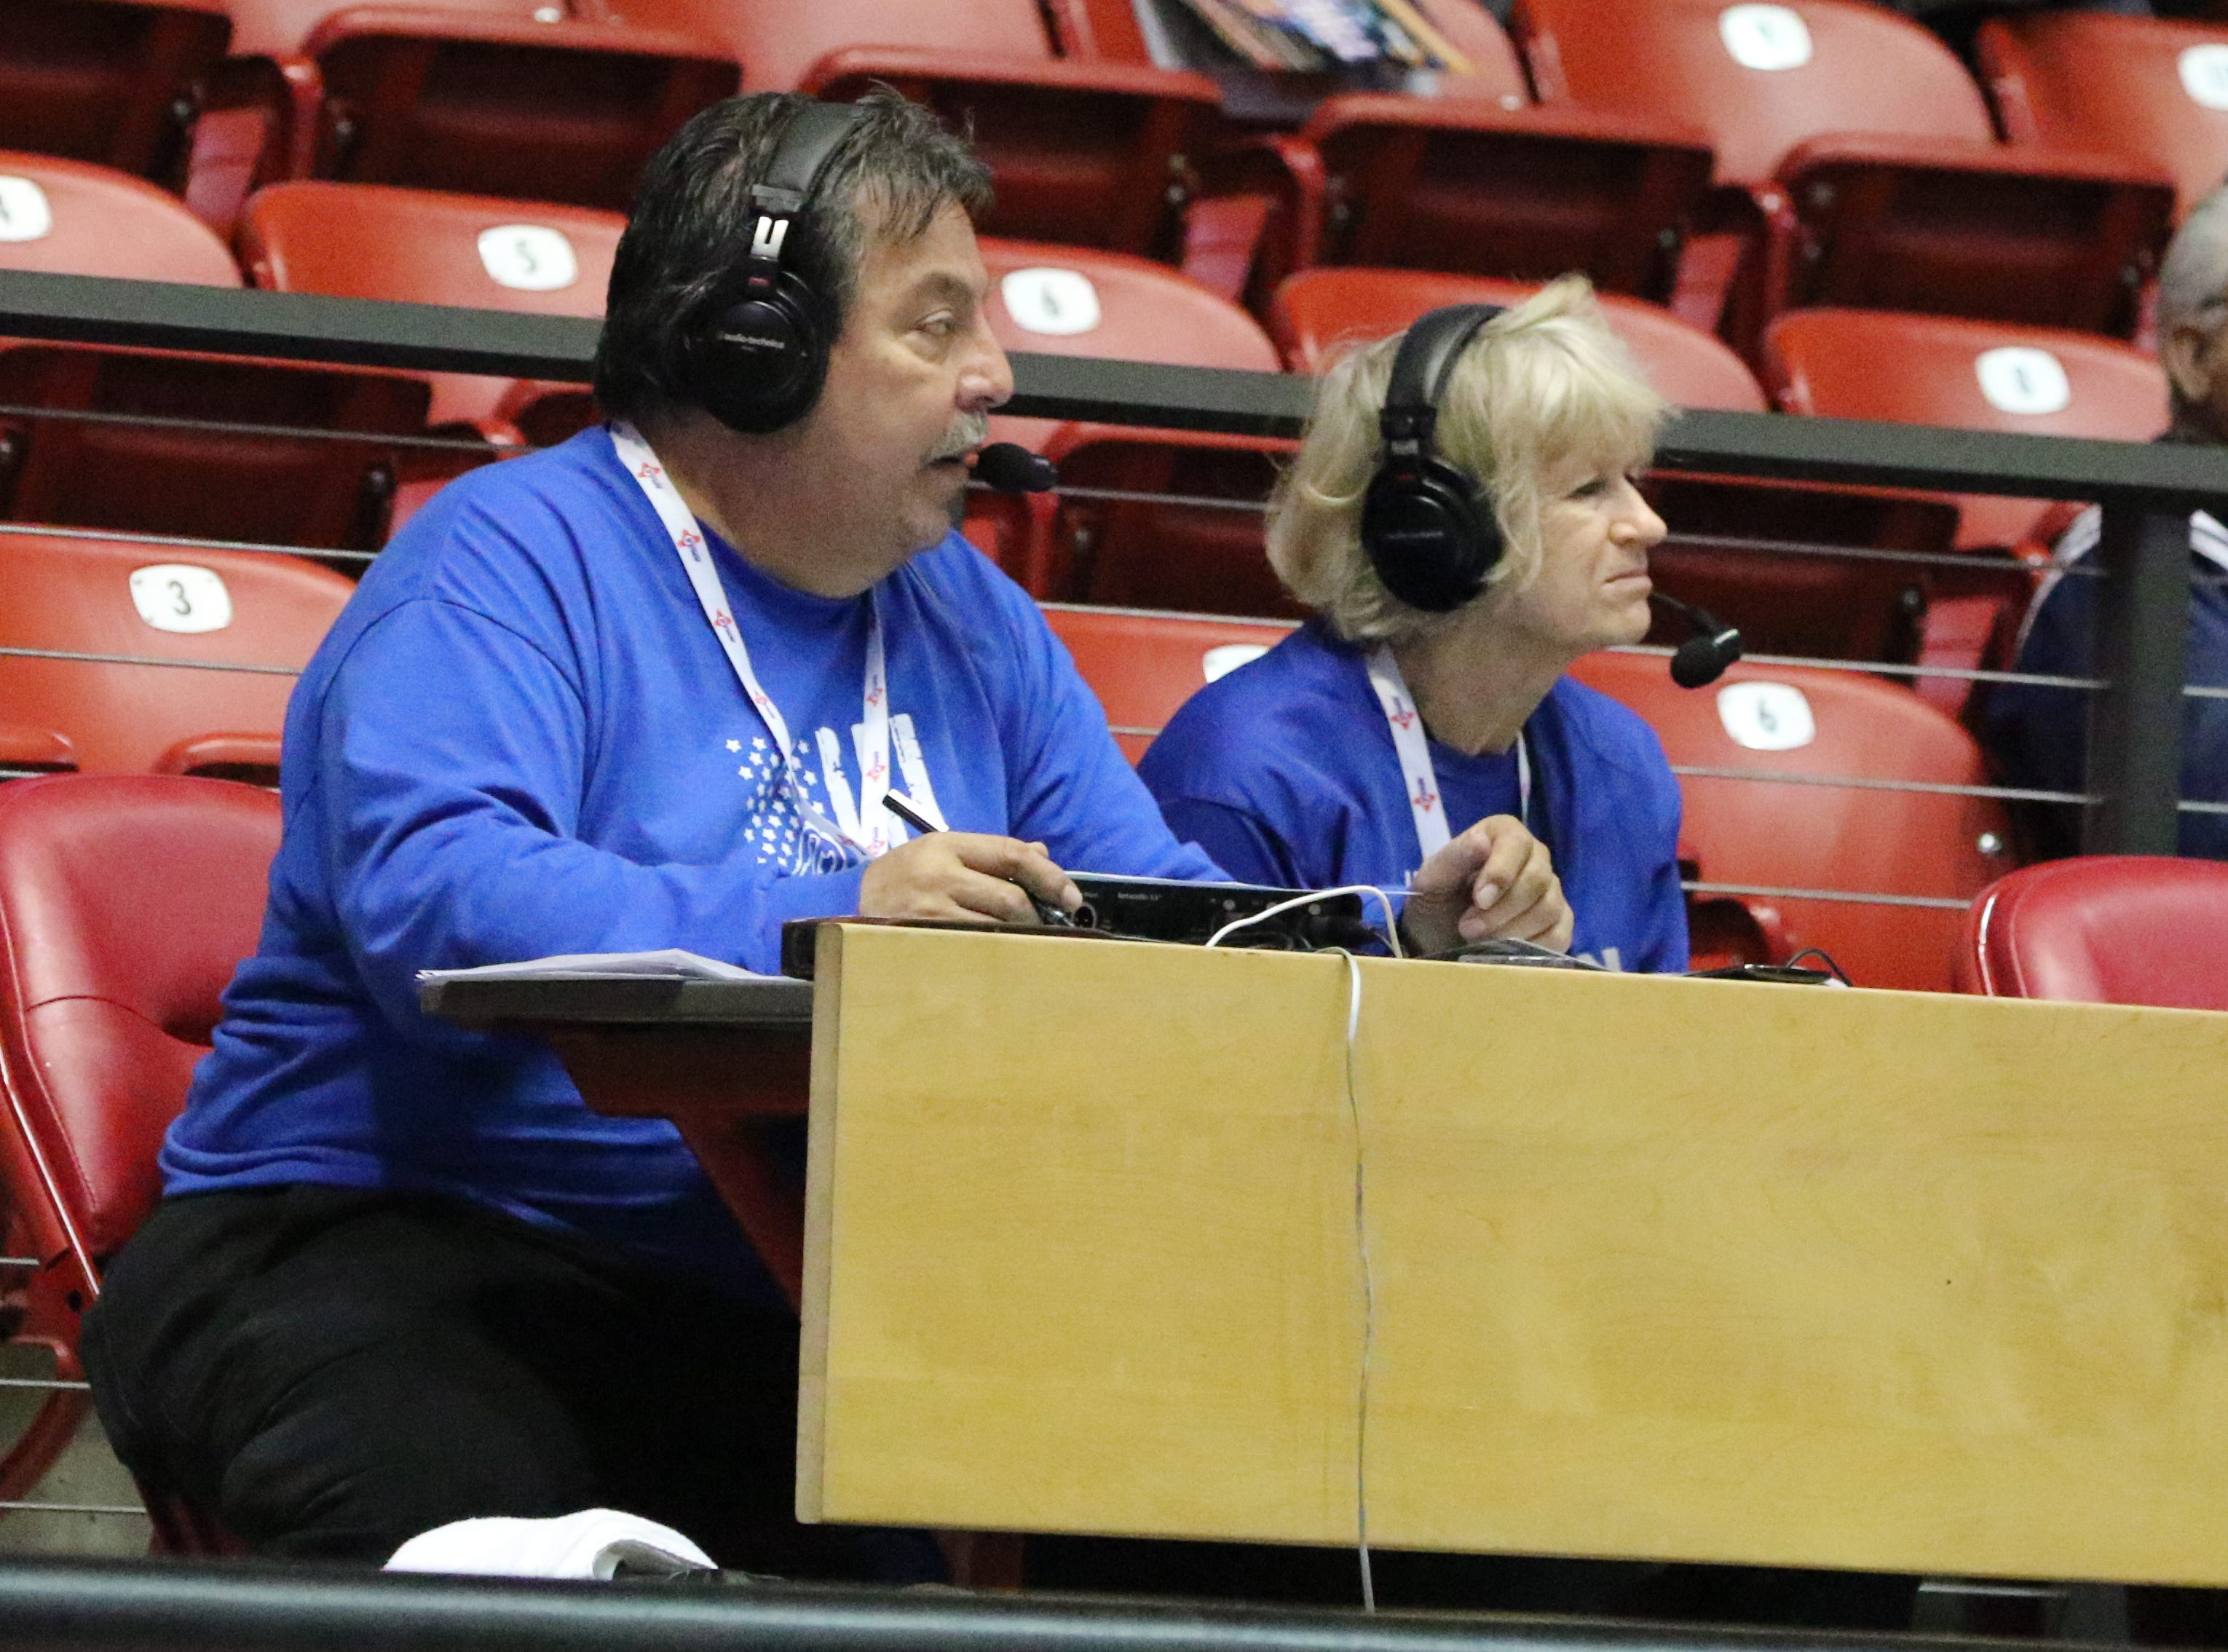 Jerry Flores and Carole Cristiano do play-by-play during Carlsbad's game against Volcano Vista in Tuesday's Class 5A quarterfinals game at The Pit. Carlsbad won, 41-39 in overtime.